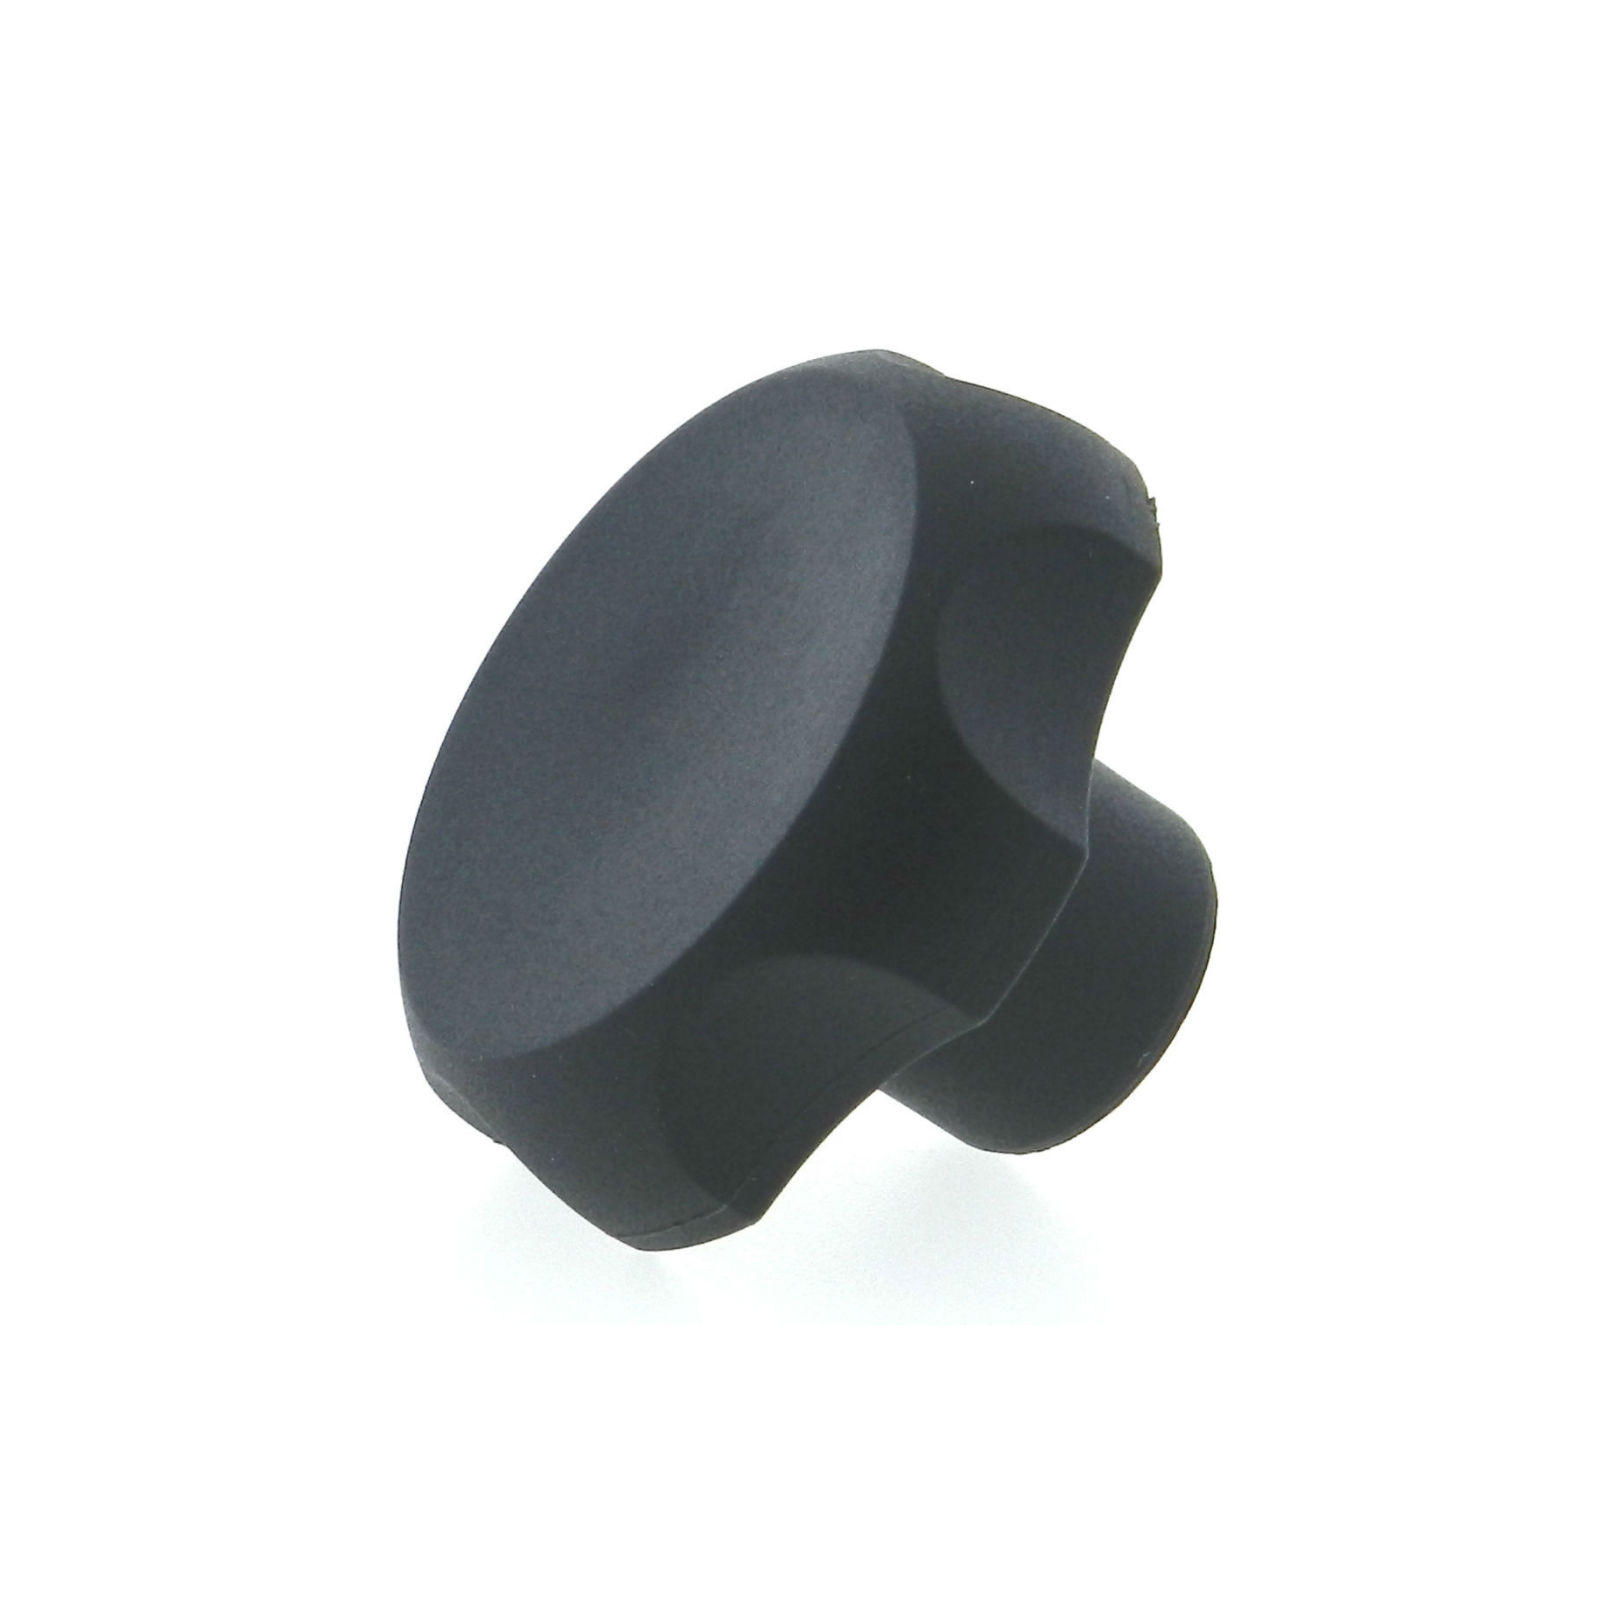 A thermoplastic 6-lobe knob with a tapped hole